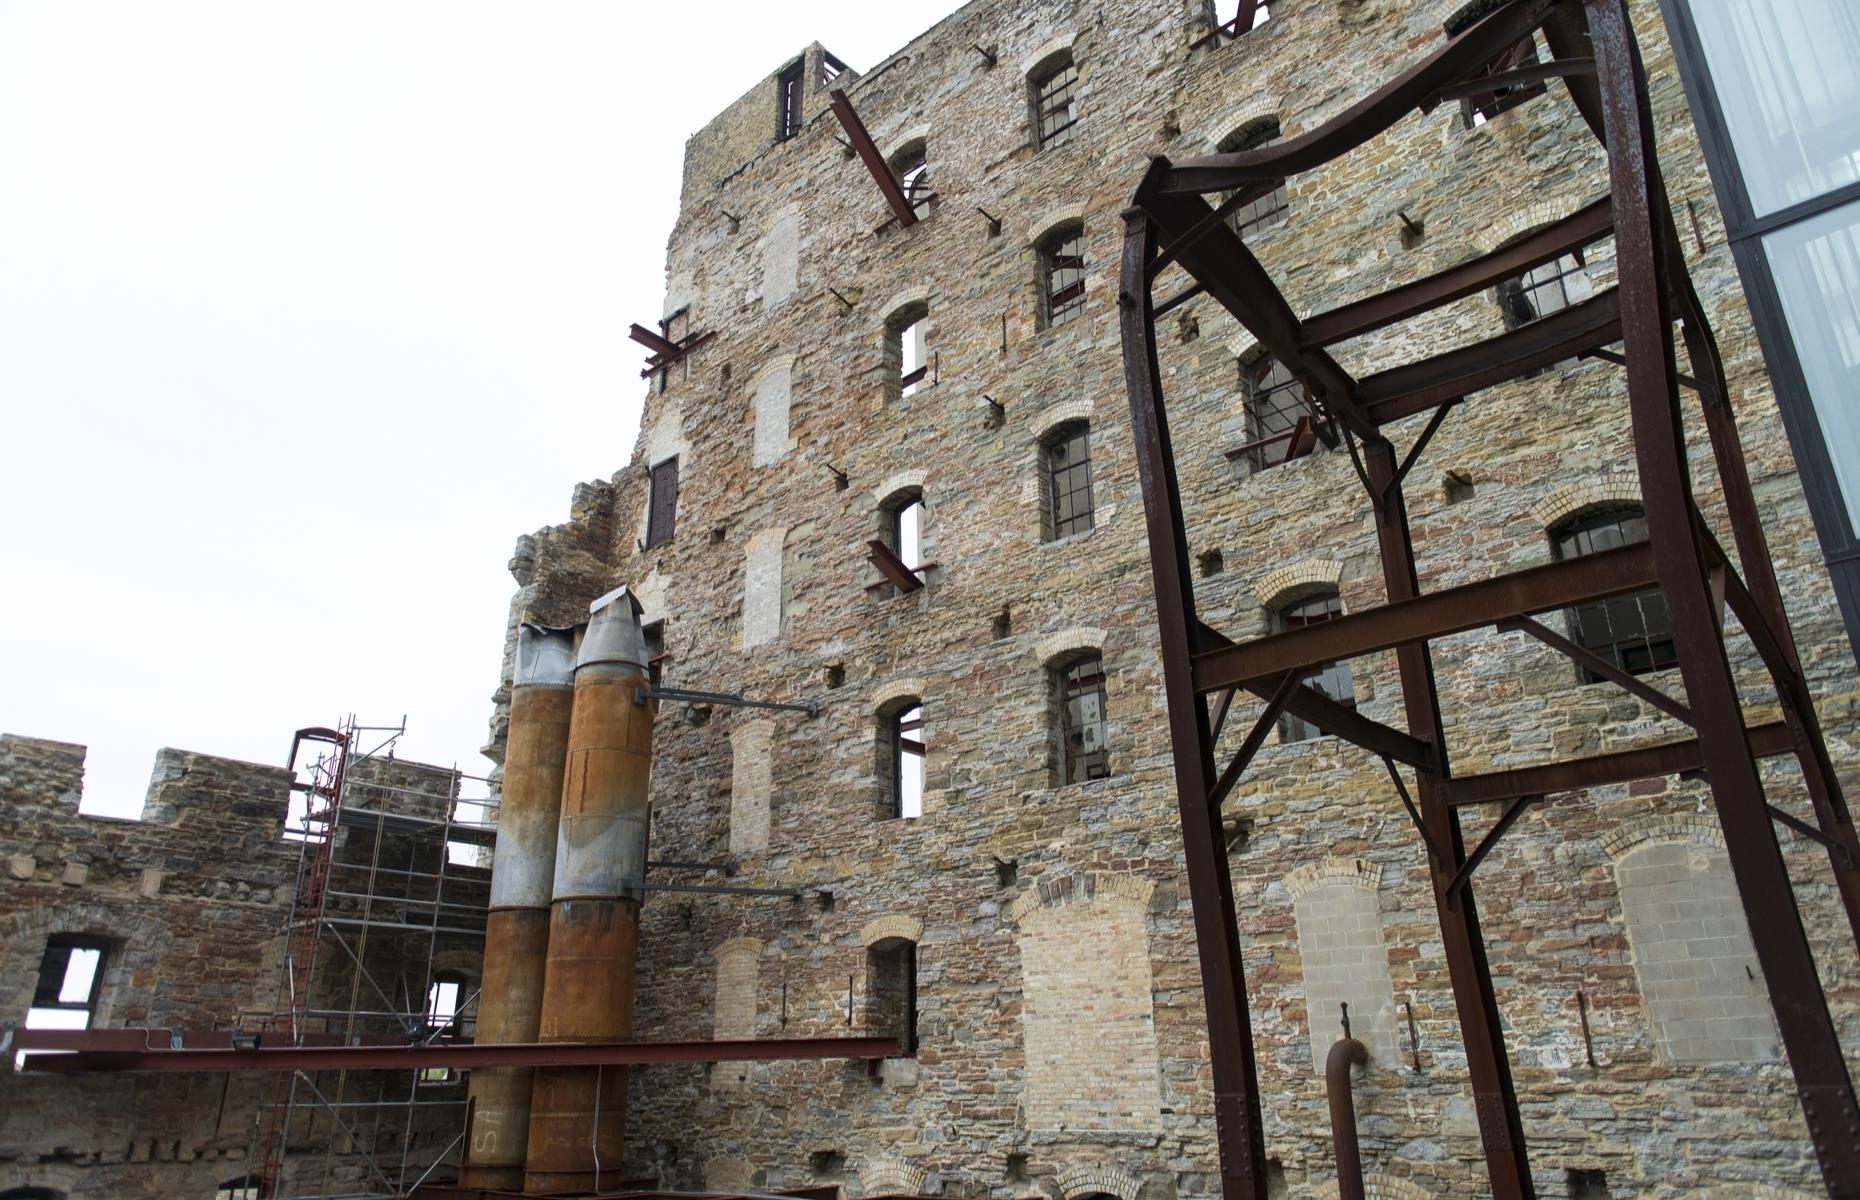 Slide 47 of 101: Later on in the 19th century, the mills eventually closed, but their abandoned remnants remain preserved as part of the Mill Ruins Park. Visitors can walk among the imposing factory walls and put their discoveries into context at the nearby Mill City Museum.